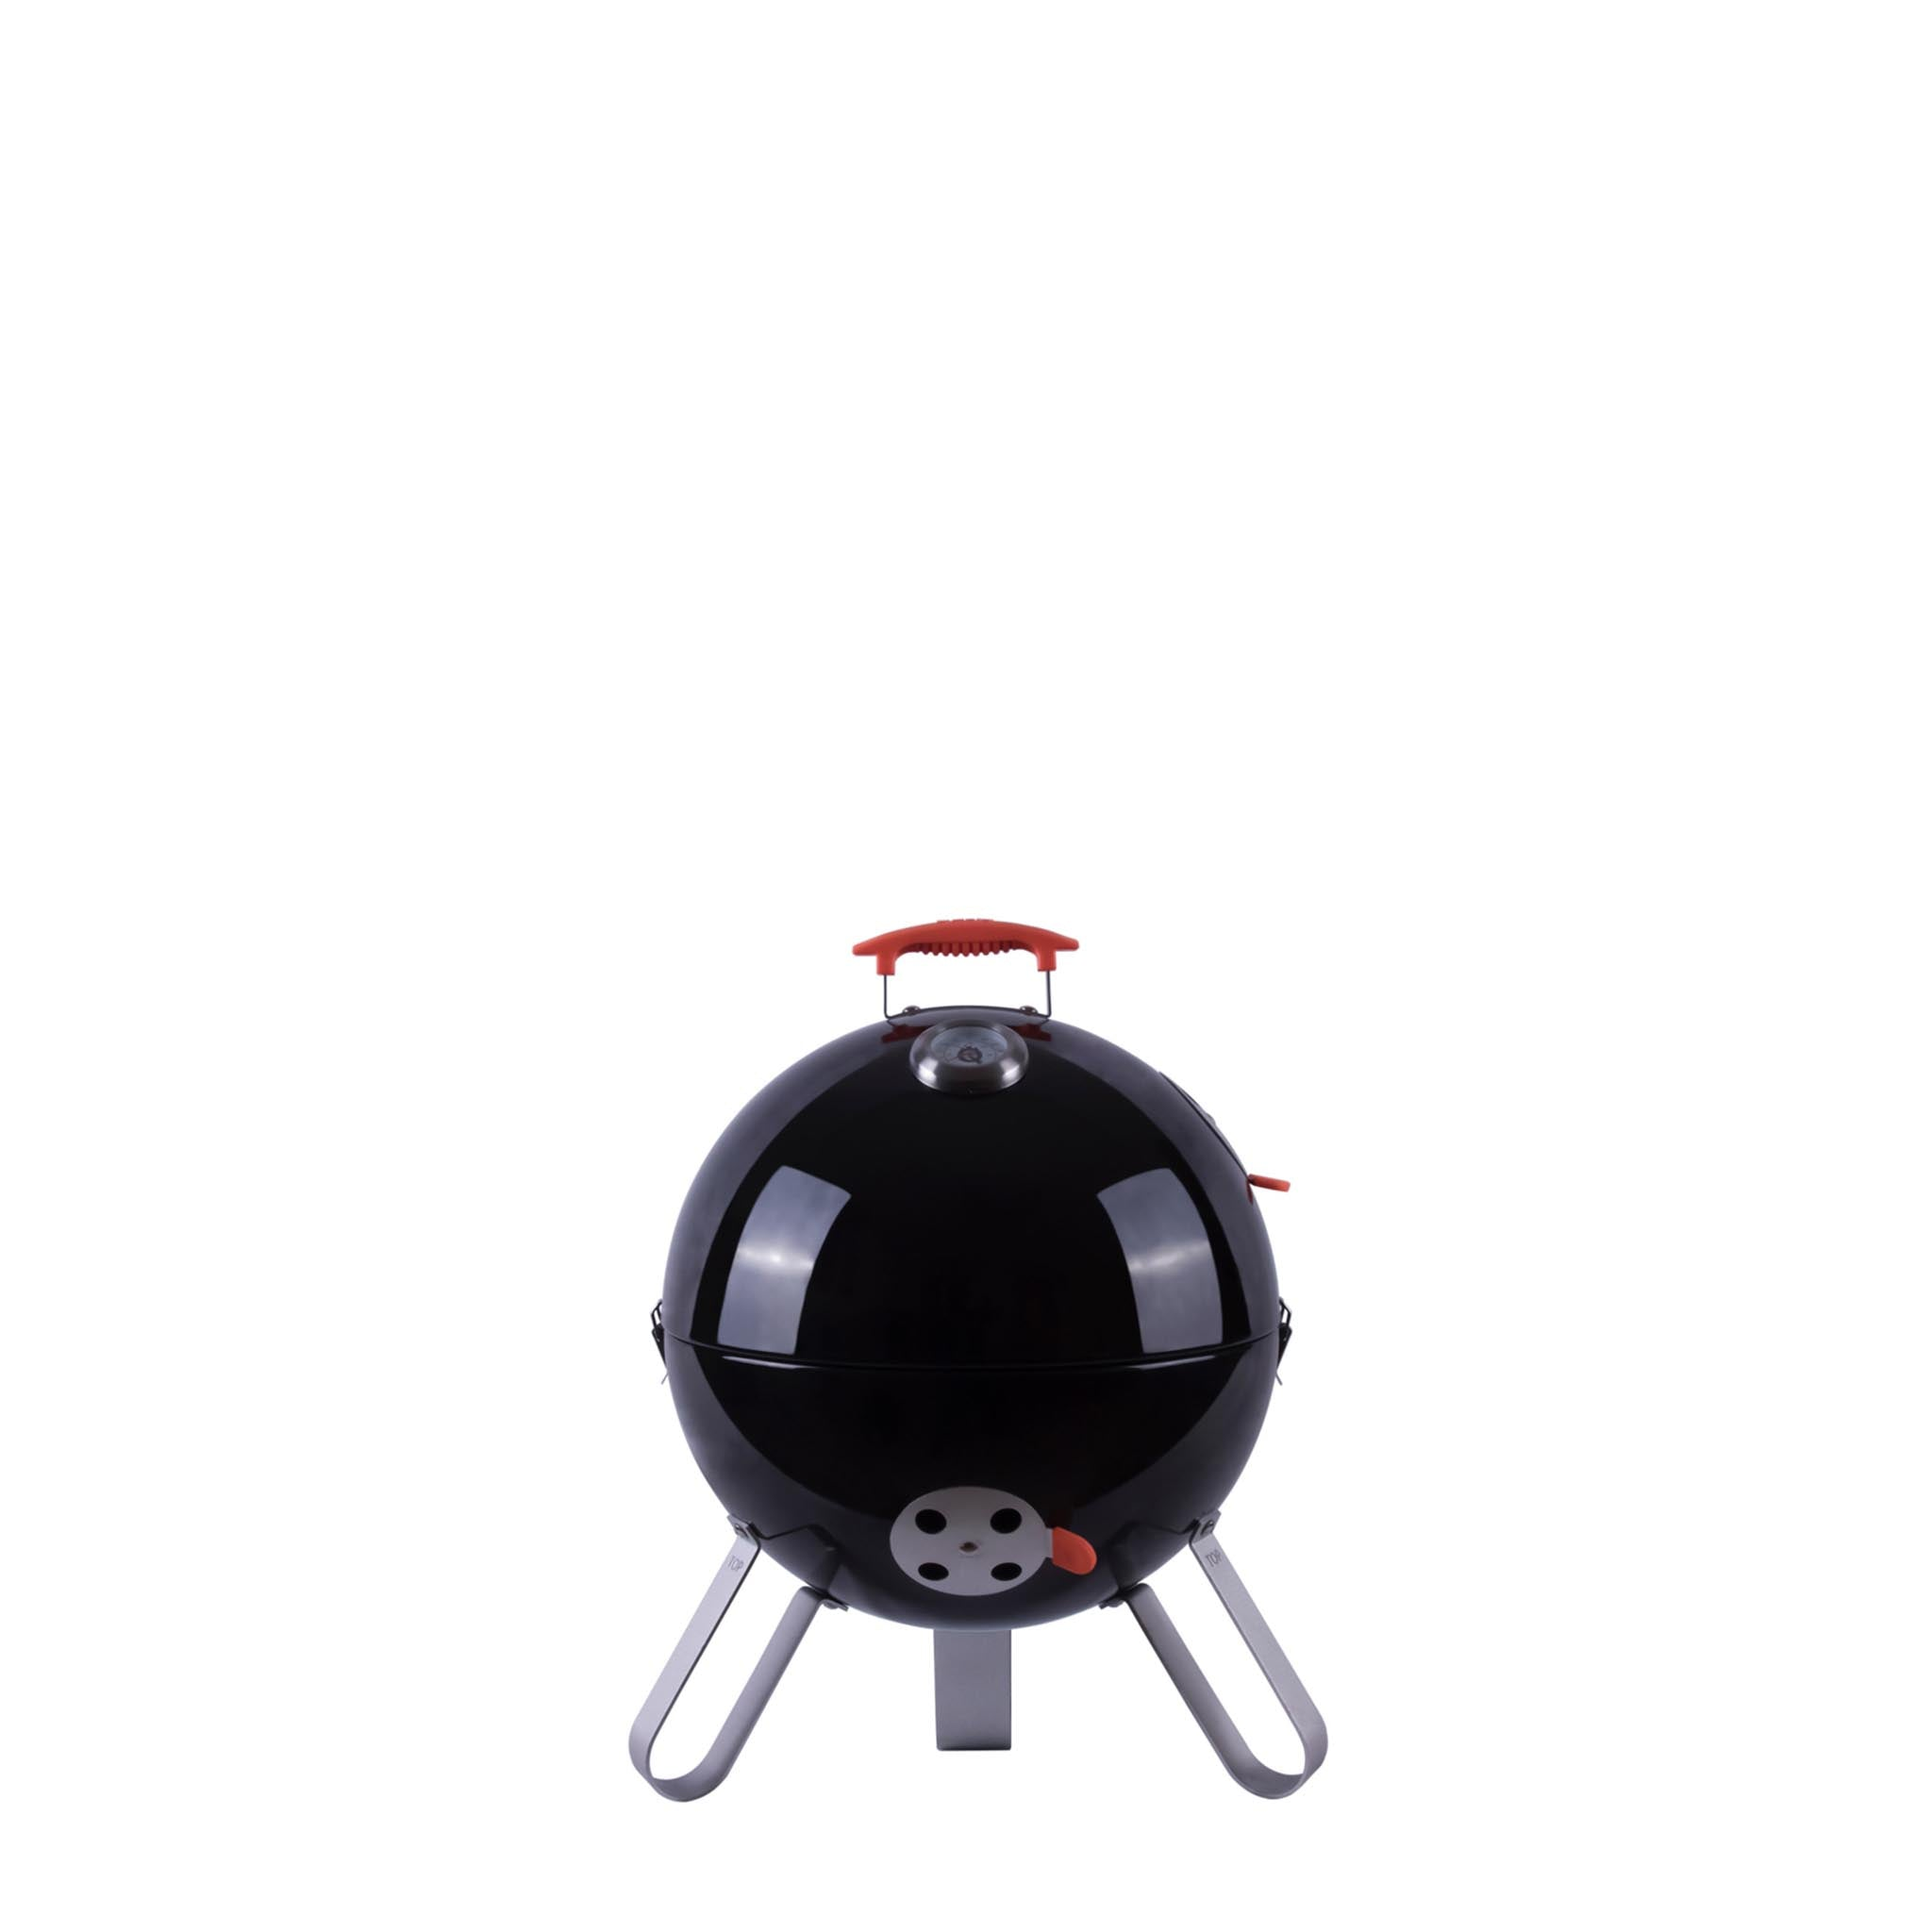 ProQ Frontier Elite 3in1 BBQ Smoker Cookware Food Smokers & BBQ